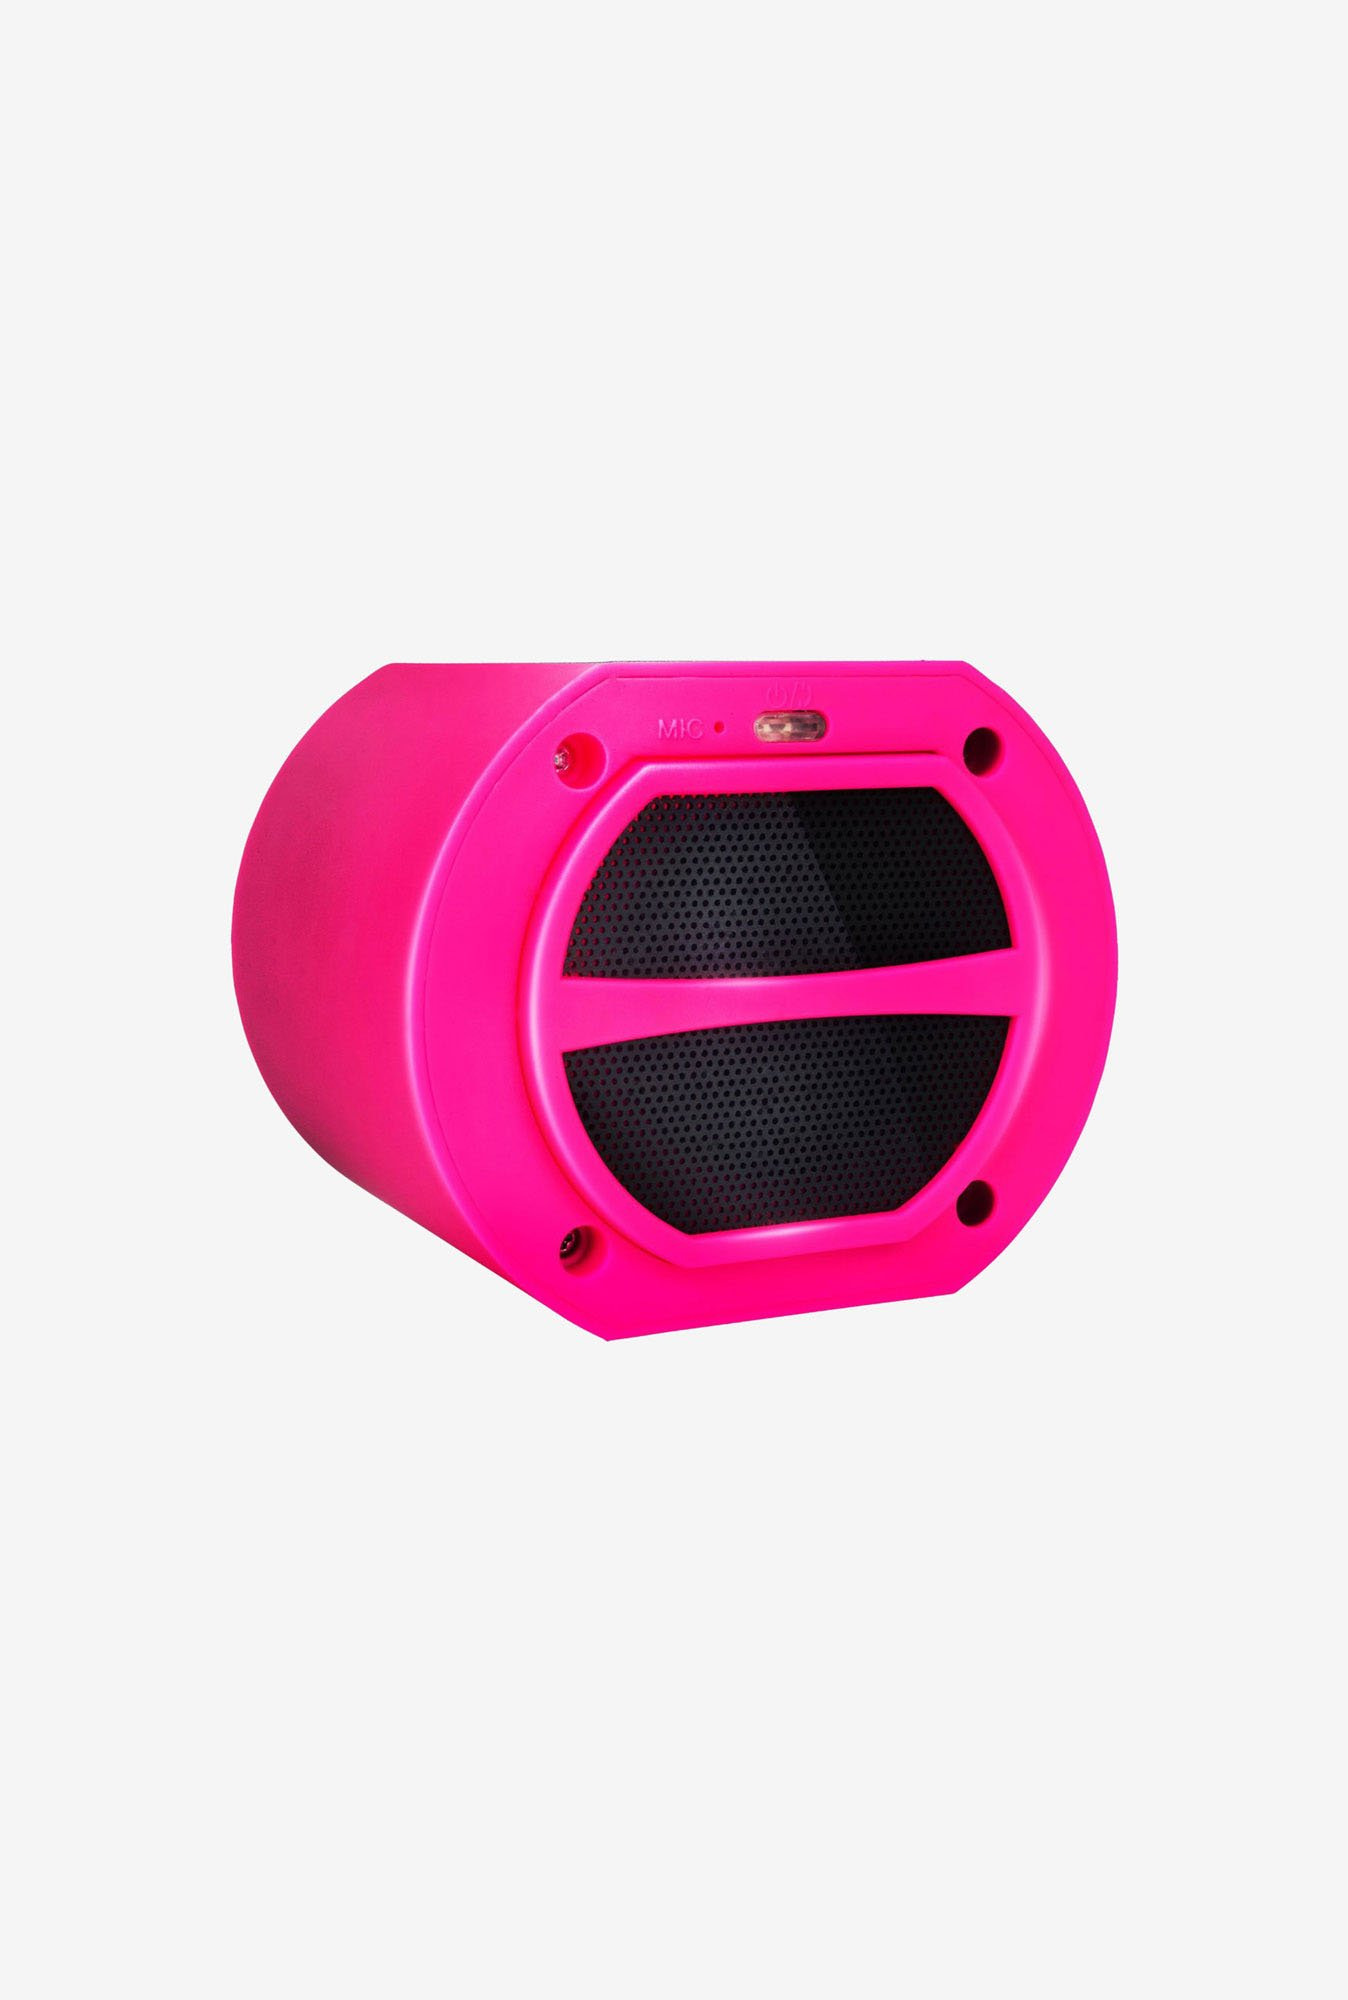 Coby CSBT-308-PNK Portable Mini Bluetooth Speaker (Pink)